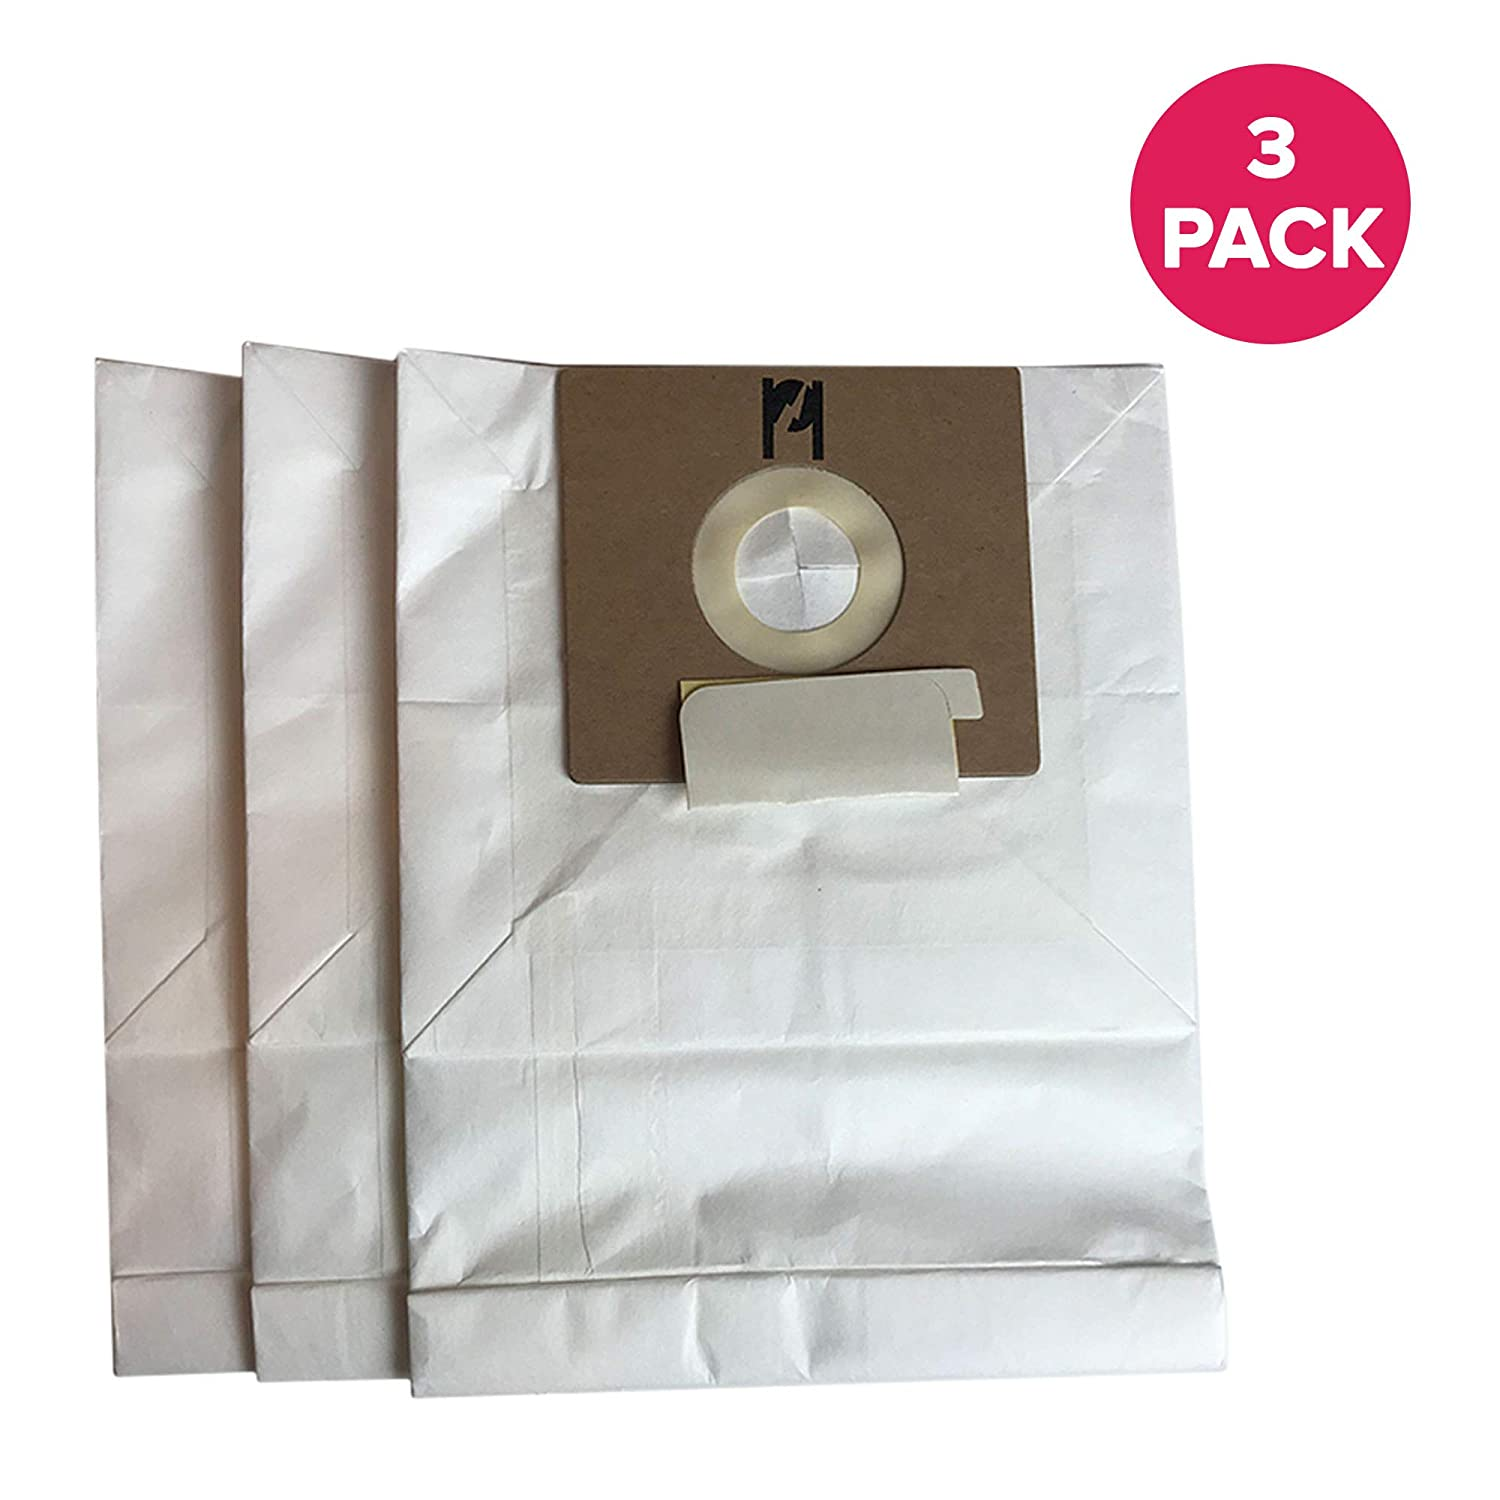 Crucial Vacuum Replacement Type B Cloth Vac Bags Part # 85003, 24196, 634875 115.2496210 - Compatible With Kenmore Bag and Oreck Canister Vacuums - Compact, Disposable Style For Vacuums (3 Pack)